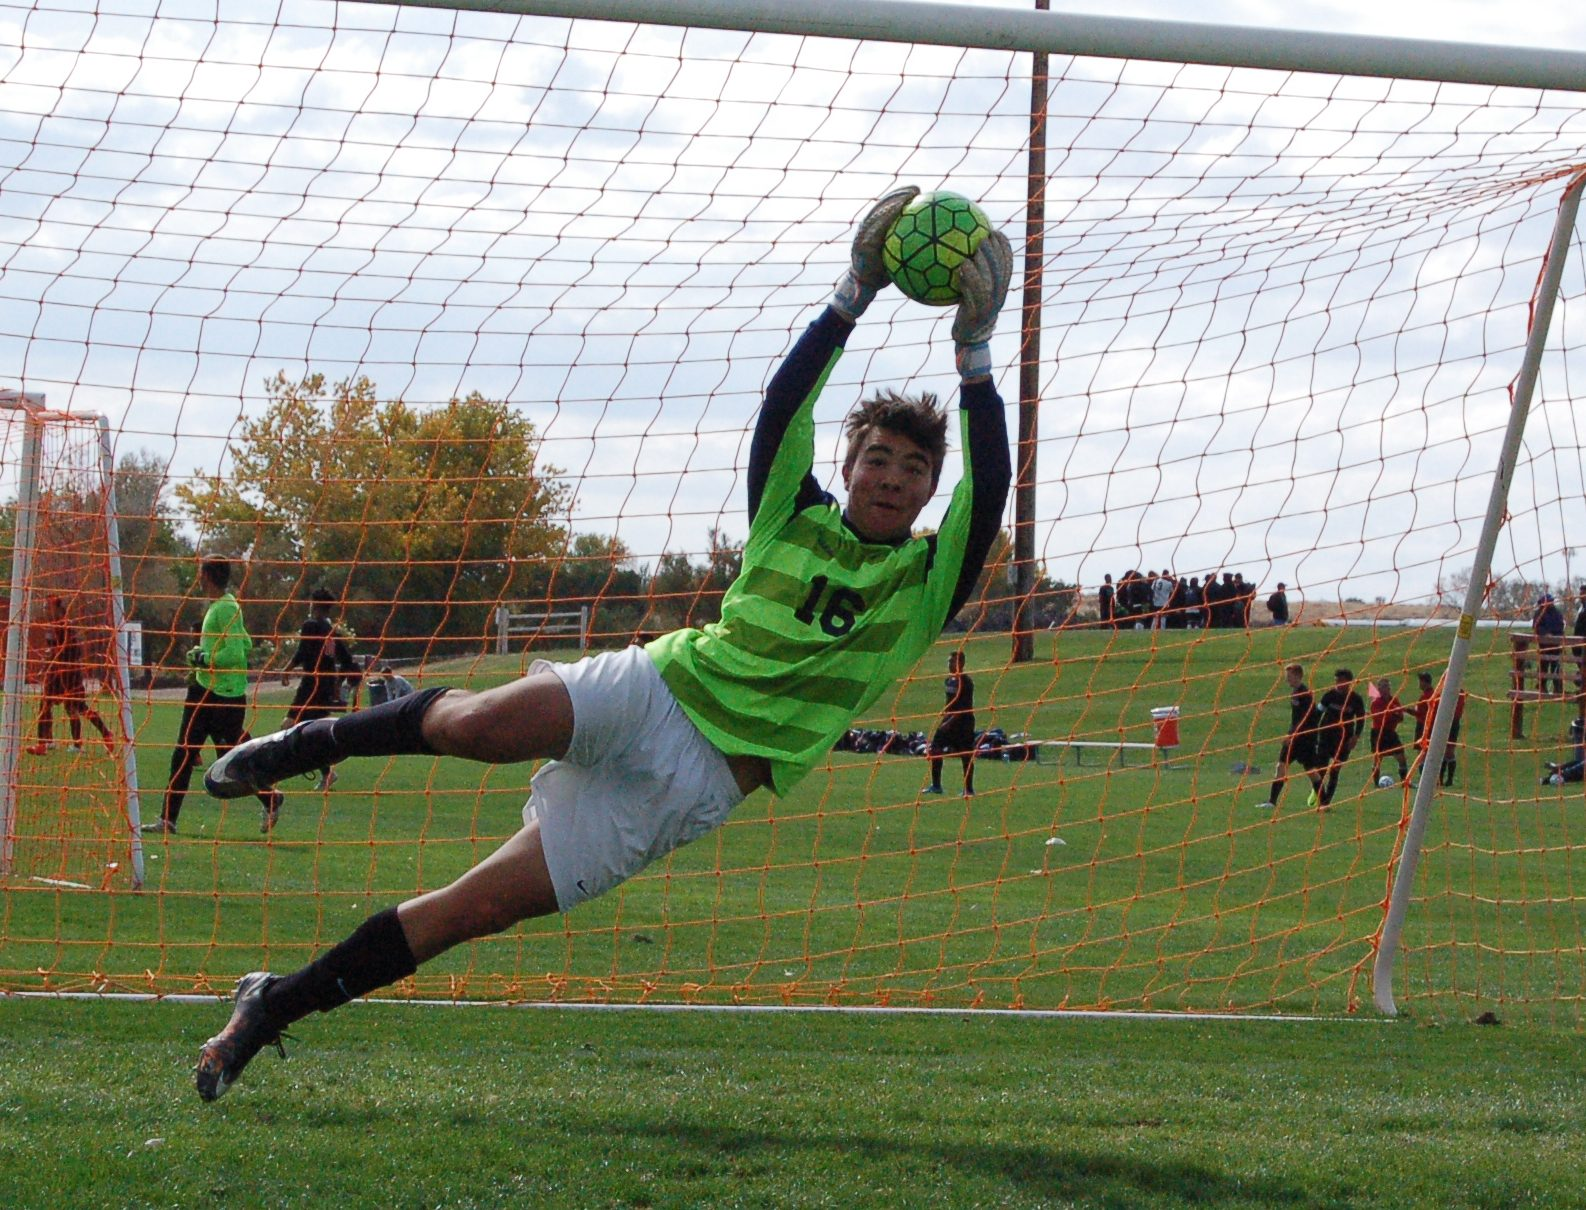 East Mountain boys soccer season ends with loss to Hope Christian